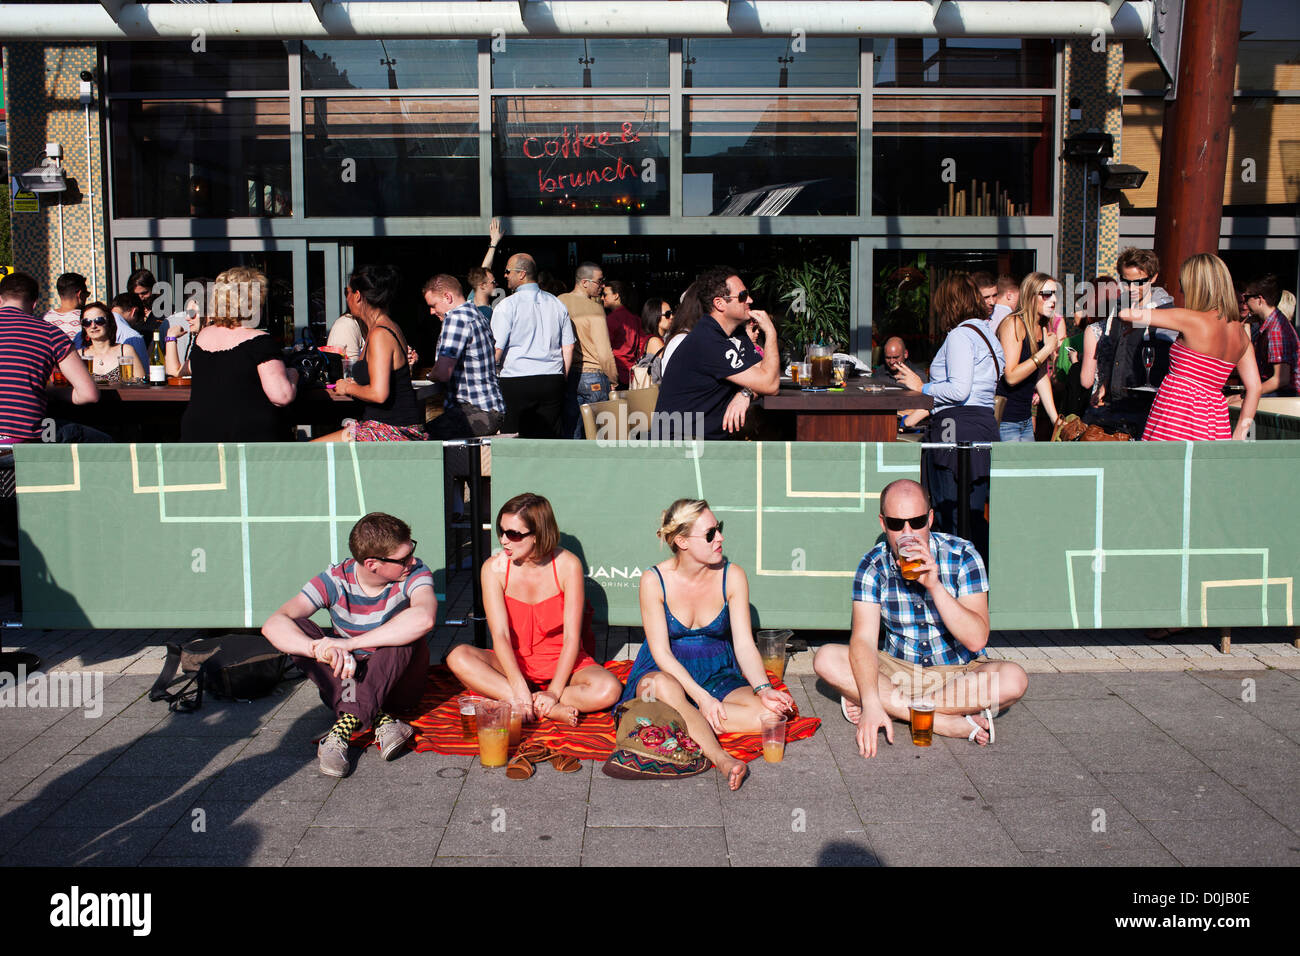 People relaxing at an Olympic torch event at Harbourside in Bristol. - Stock Image